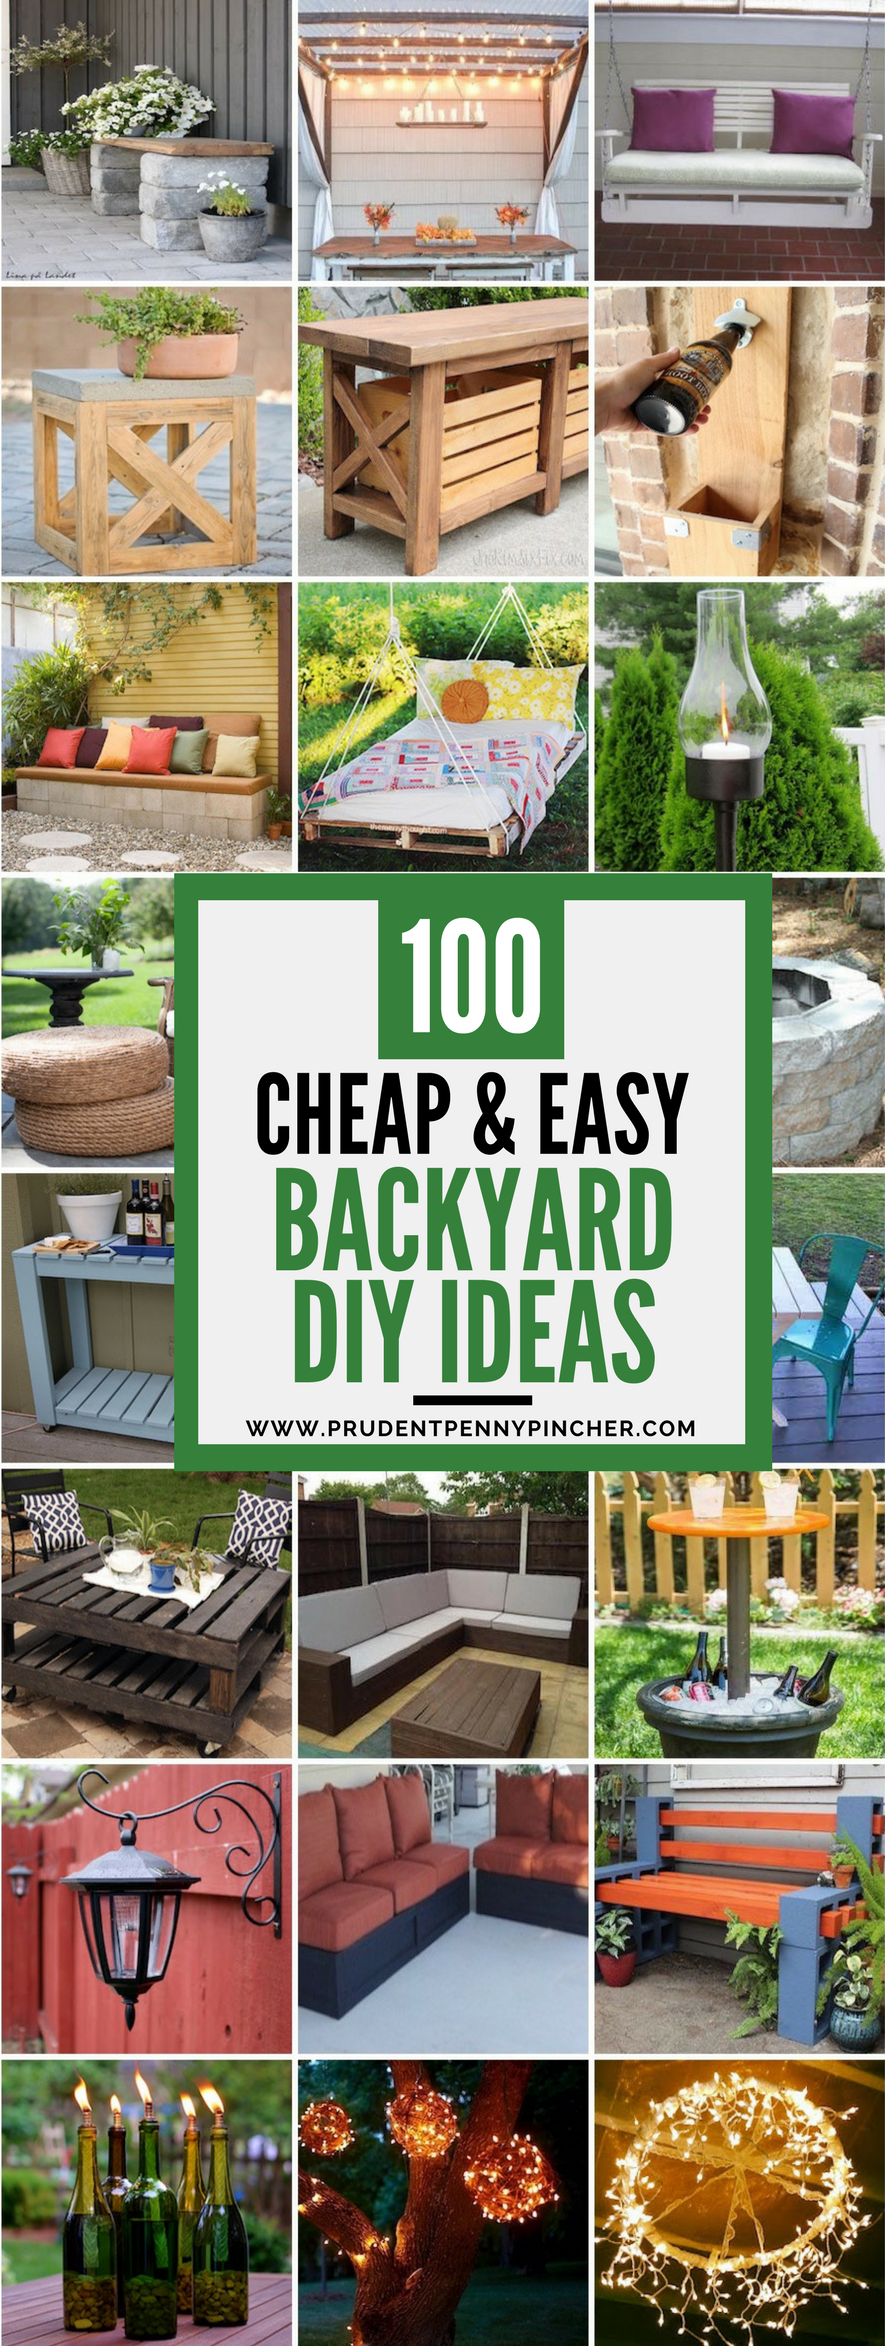 Charmant 100 Cheap And Easy DIY Backyard Ideas